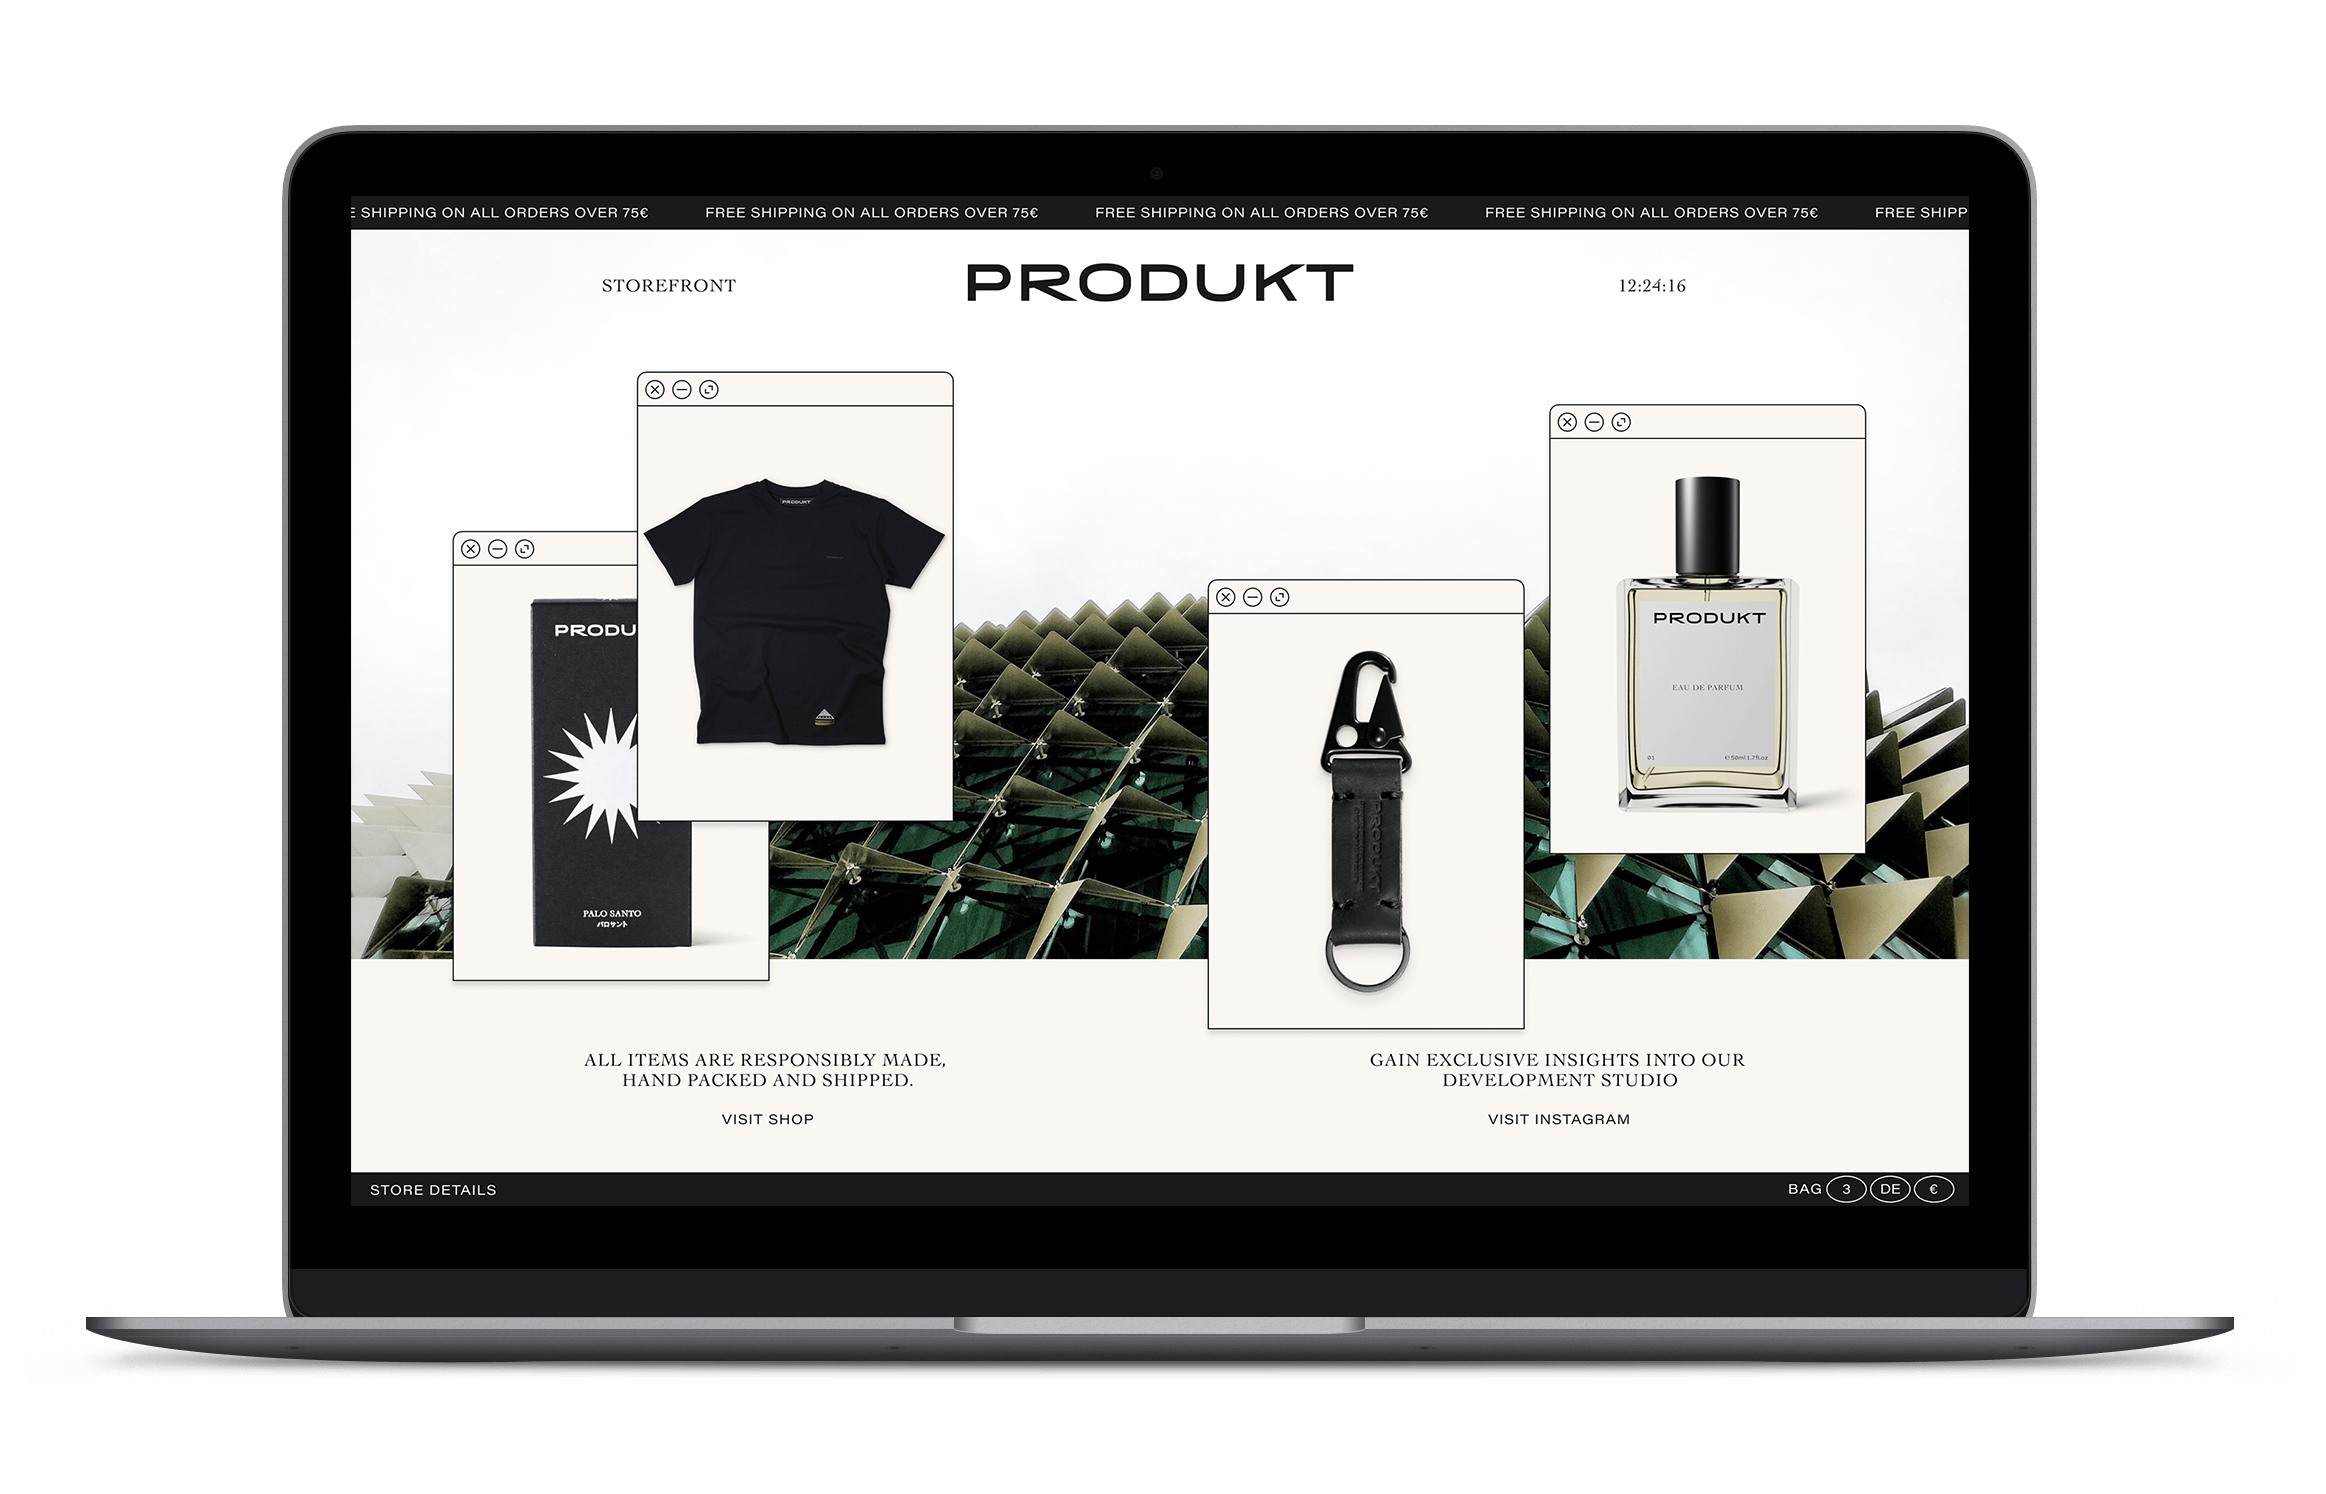 We developed the online shop to accept payments from countless vendors and ship globally